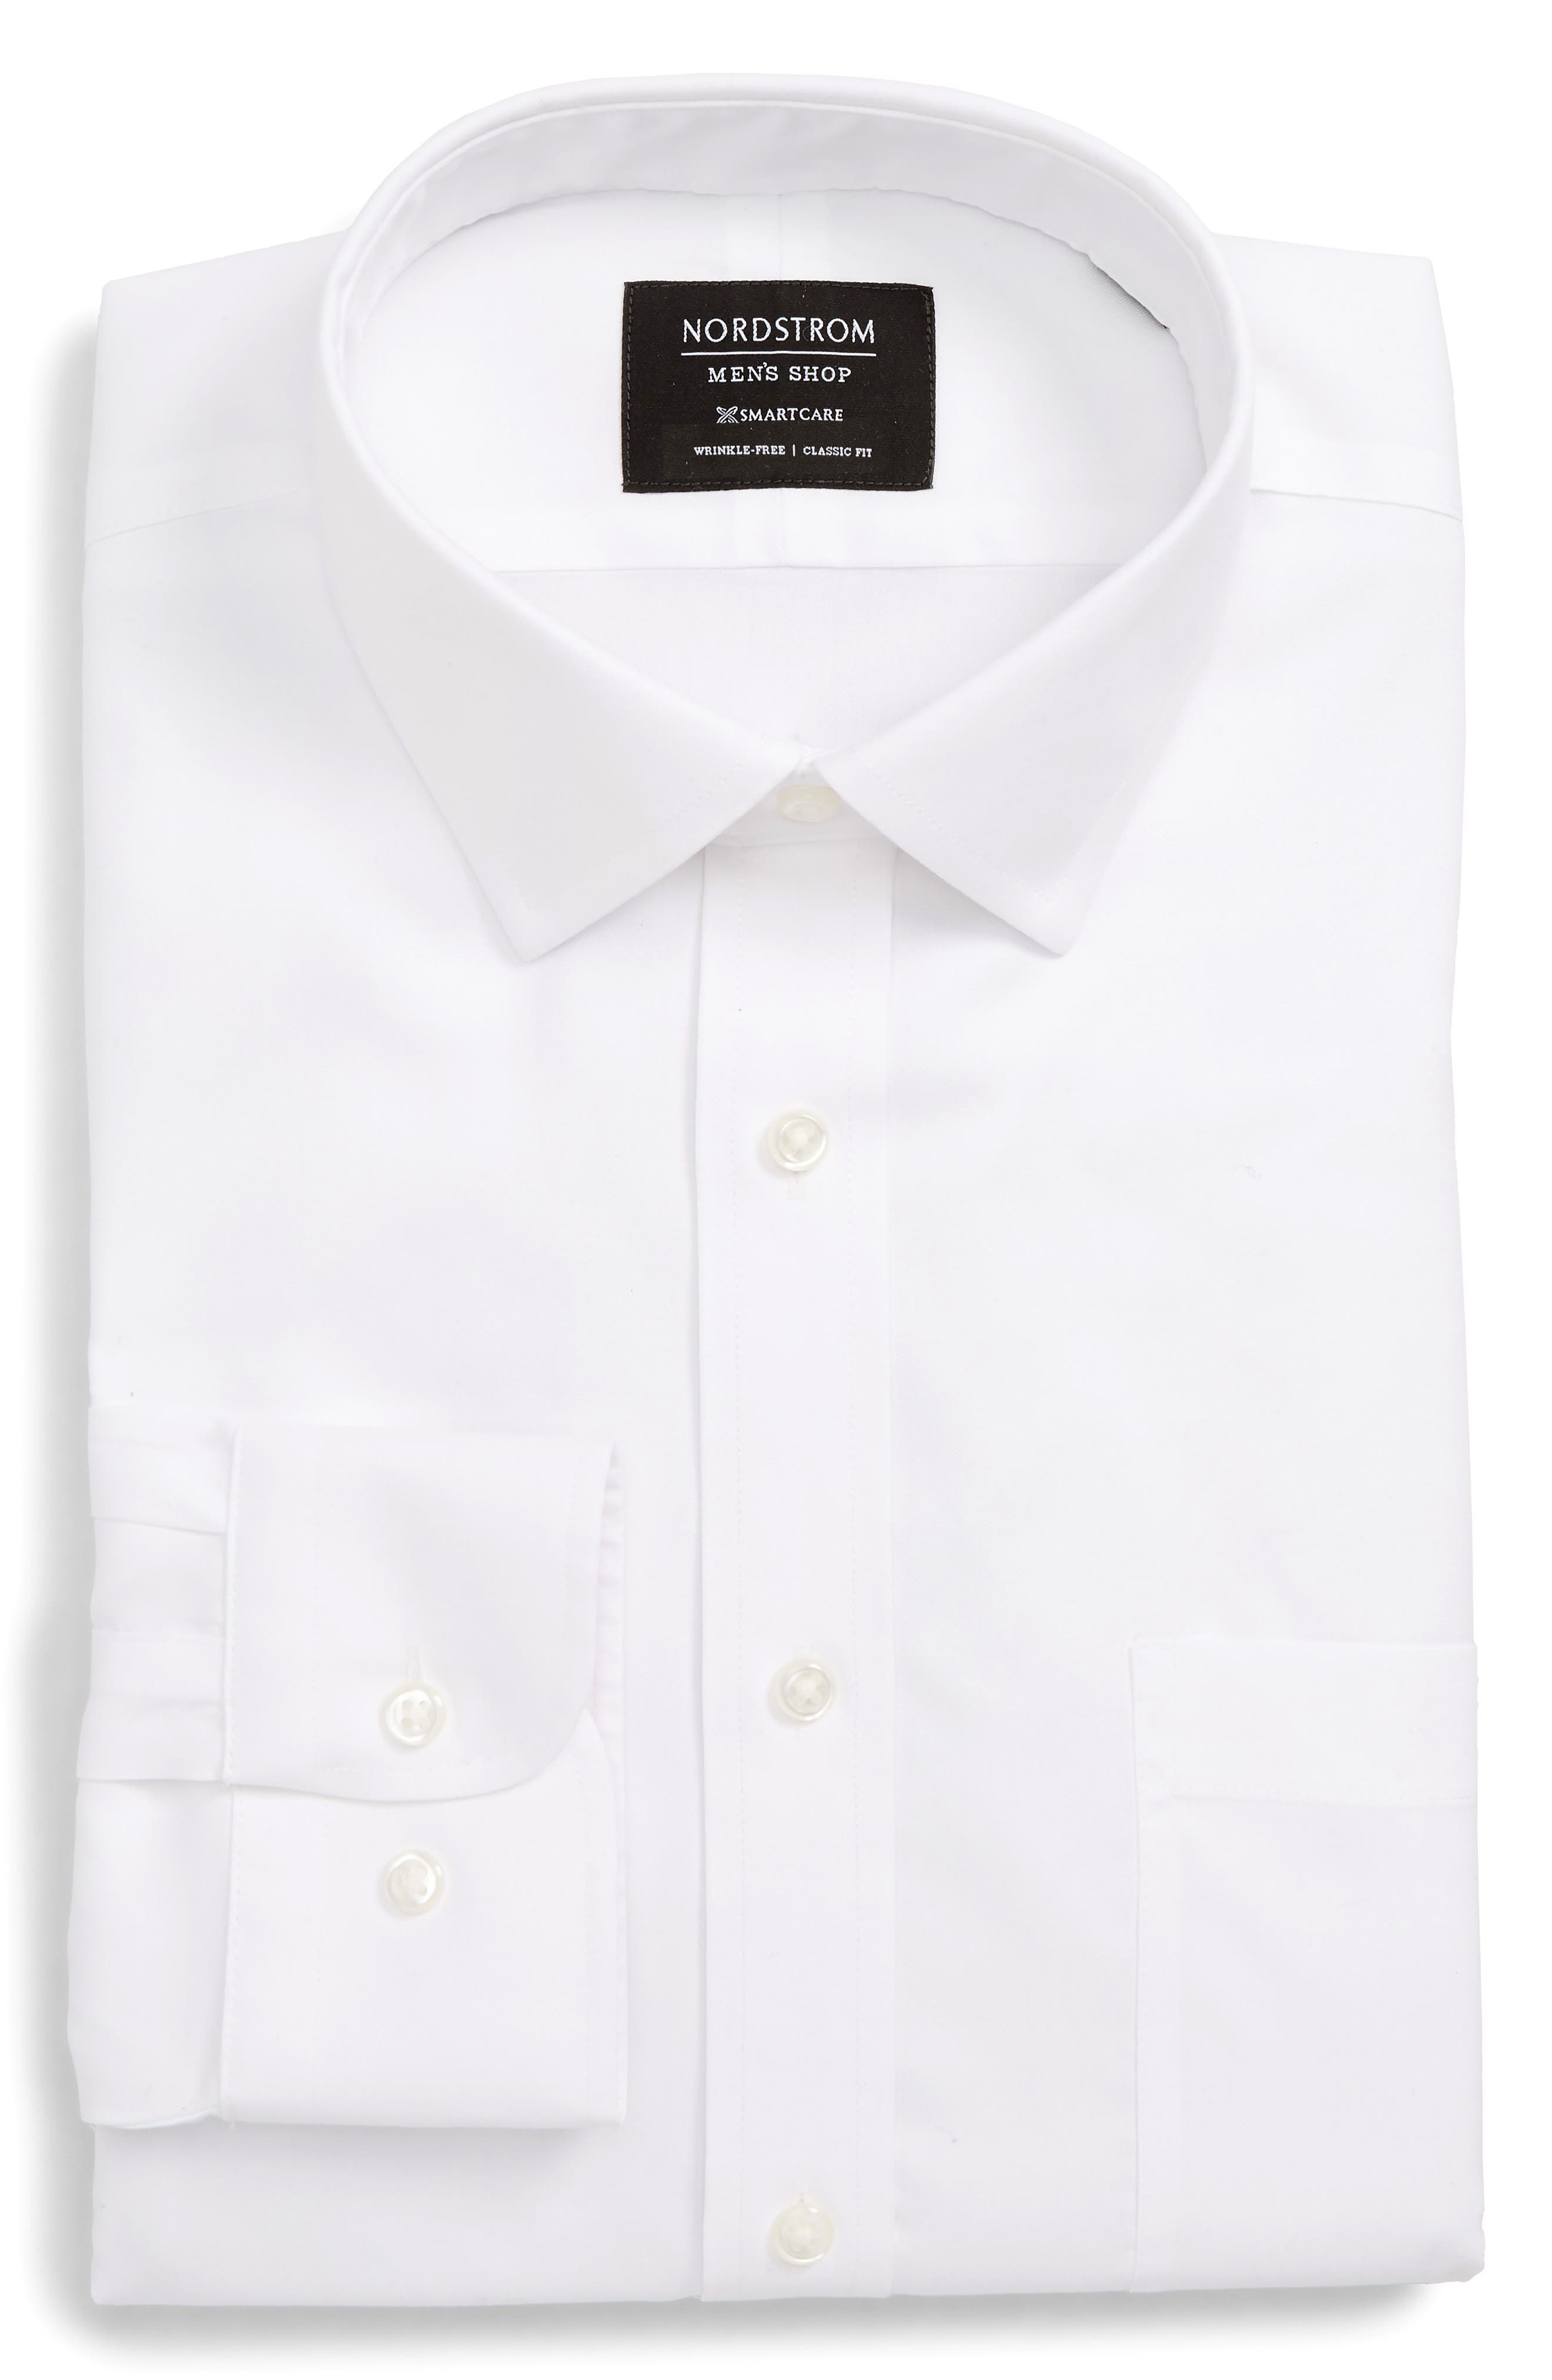 Nordstrom Shop Smartcare(TM) Classic Fit Solid Dress Shirt, 5.5 34/35 - White (Online Only)